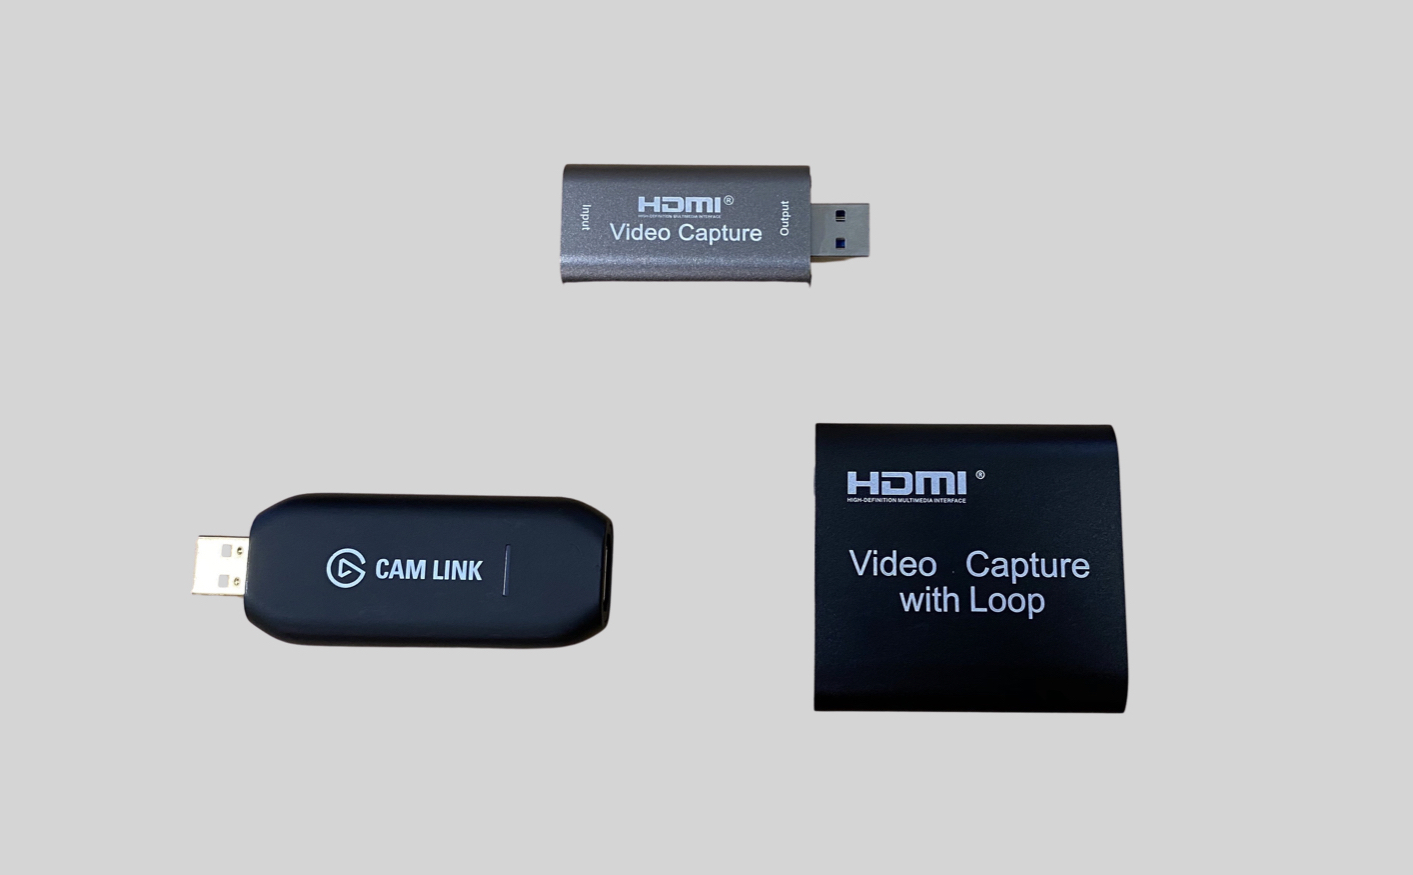 Inexpensive HDMI capture sticks solve camera shyness types 1, 2 & 3 in many cases 1